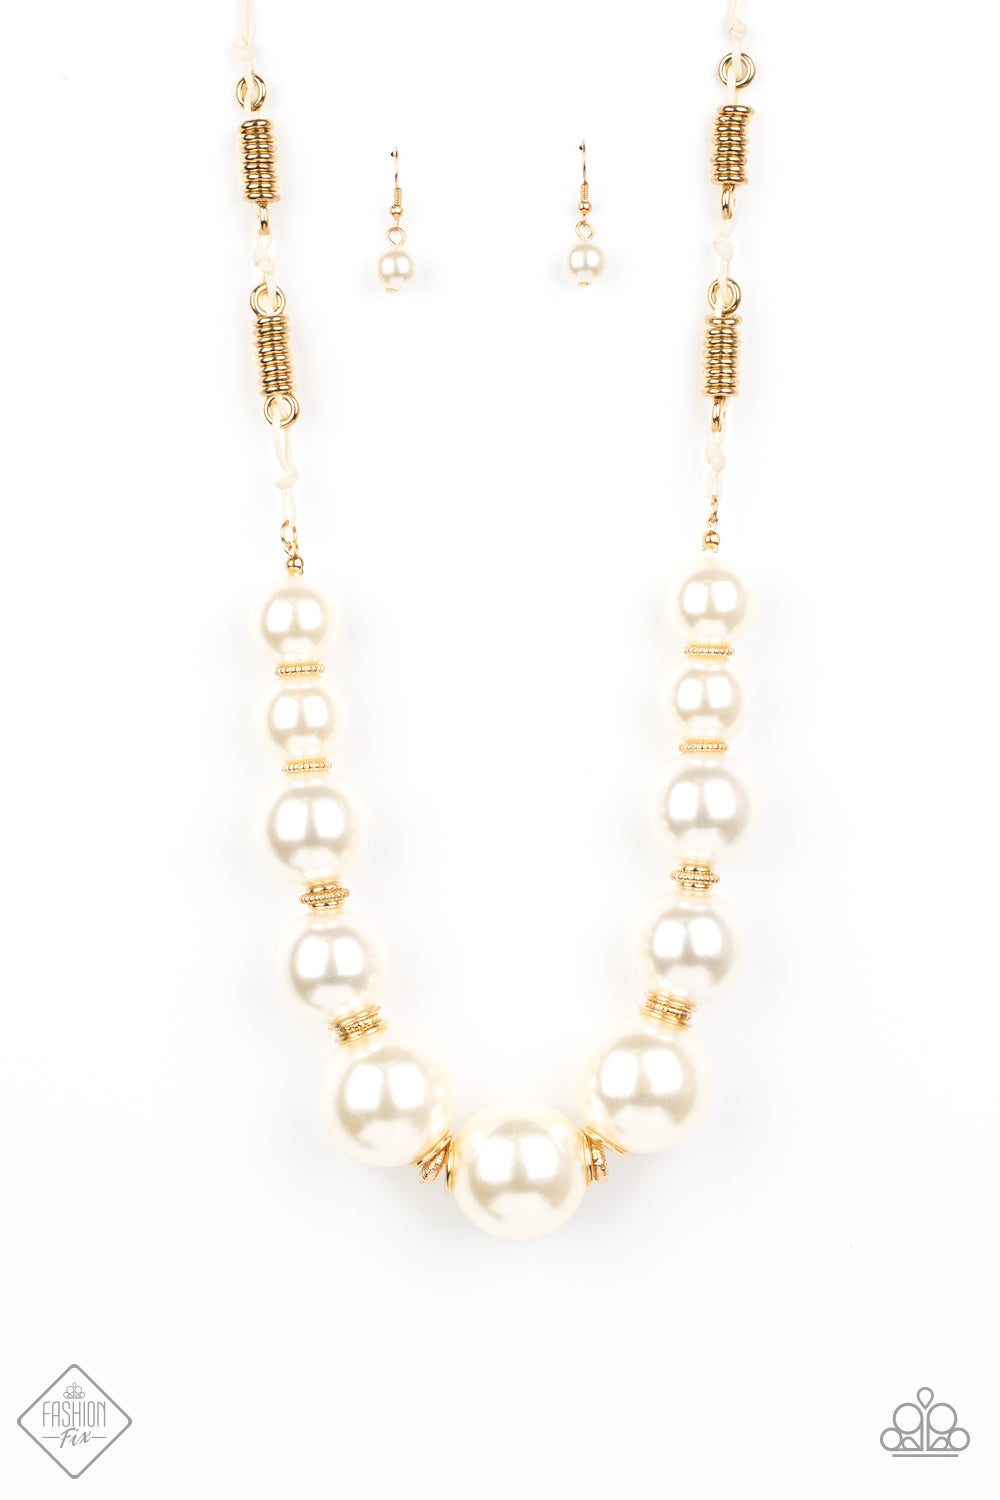 Paparazzi Necklace ~ Pearly Prosperity -Fashion Fix Oct2020 - Gold